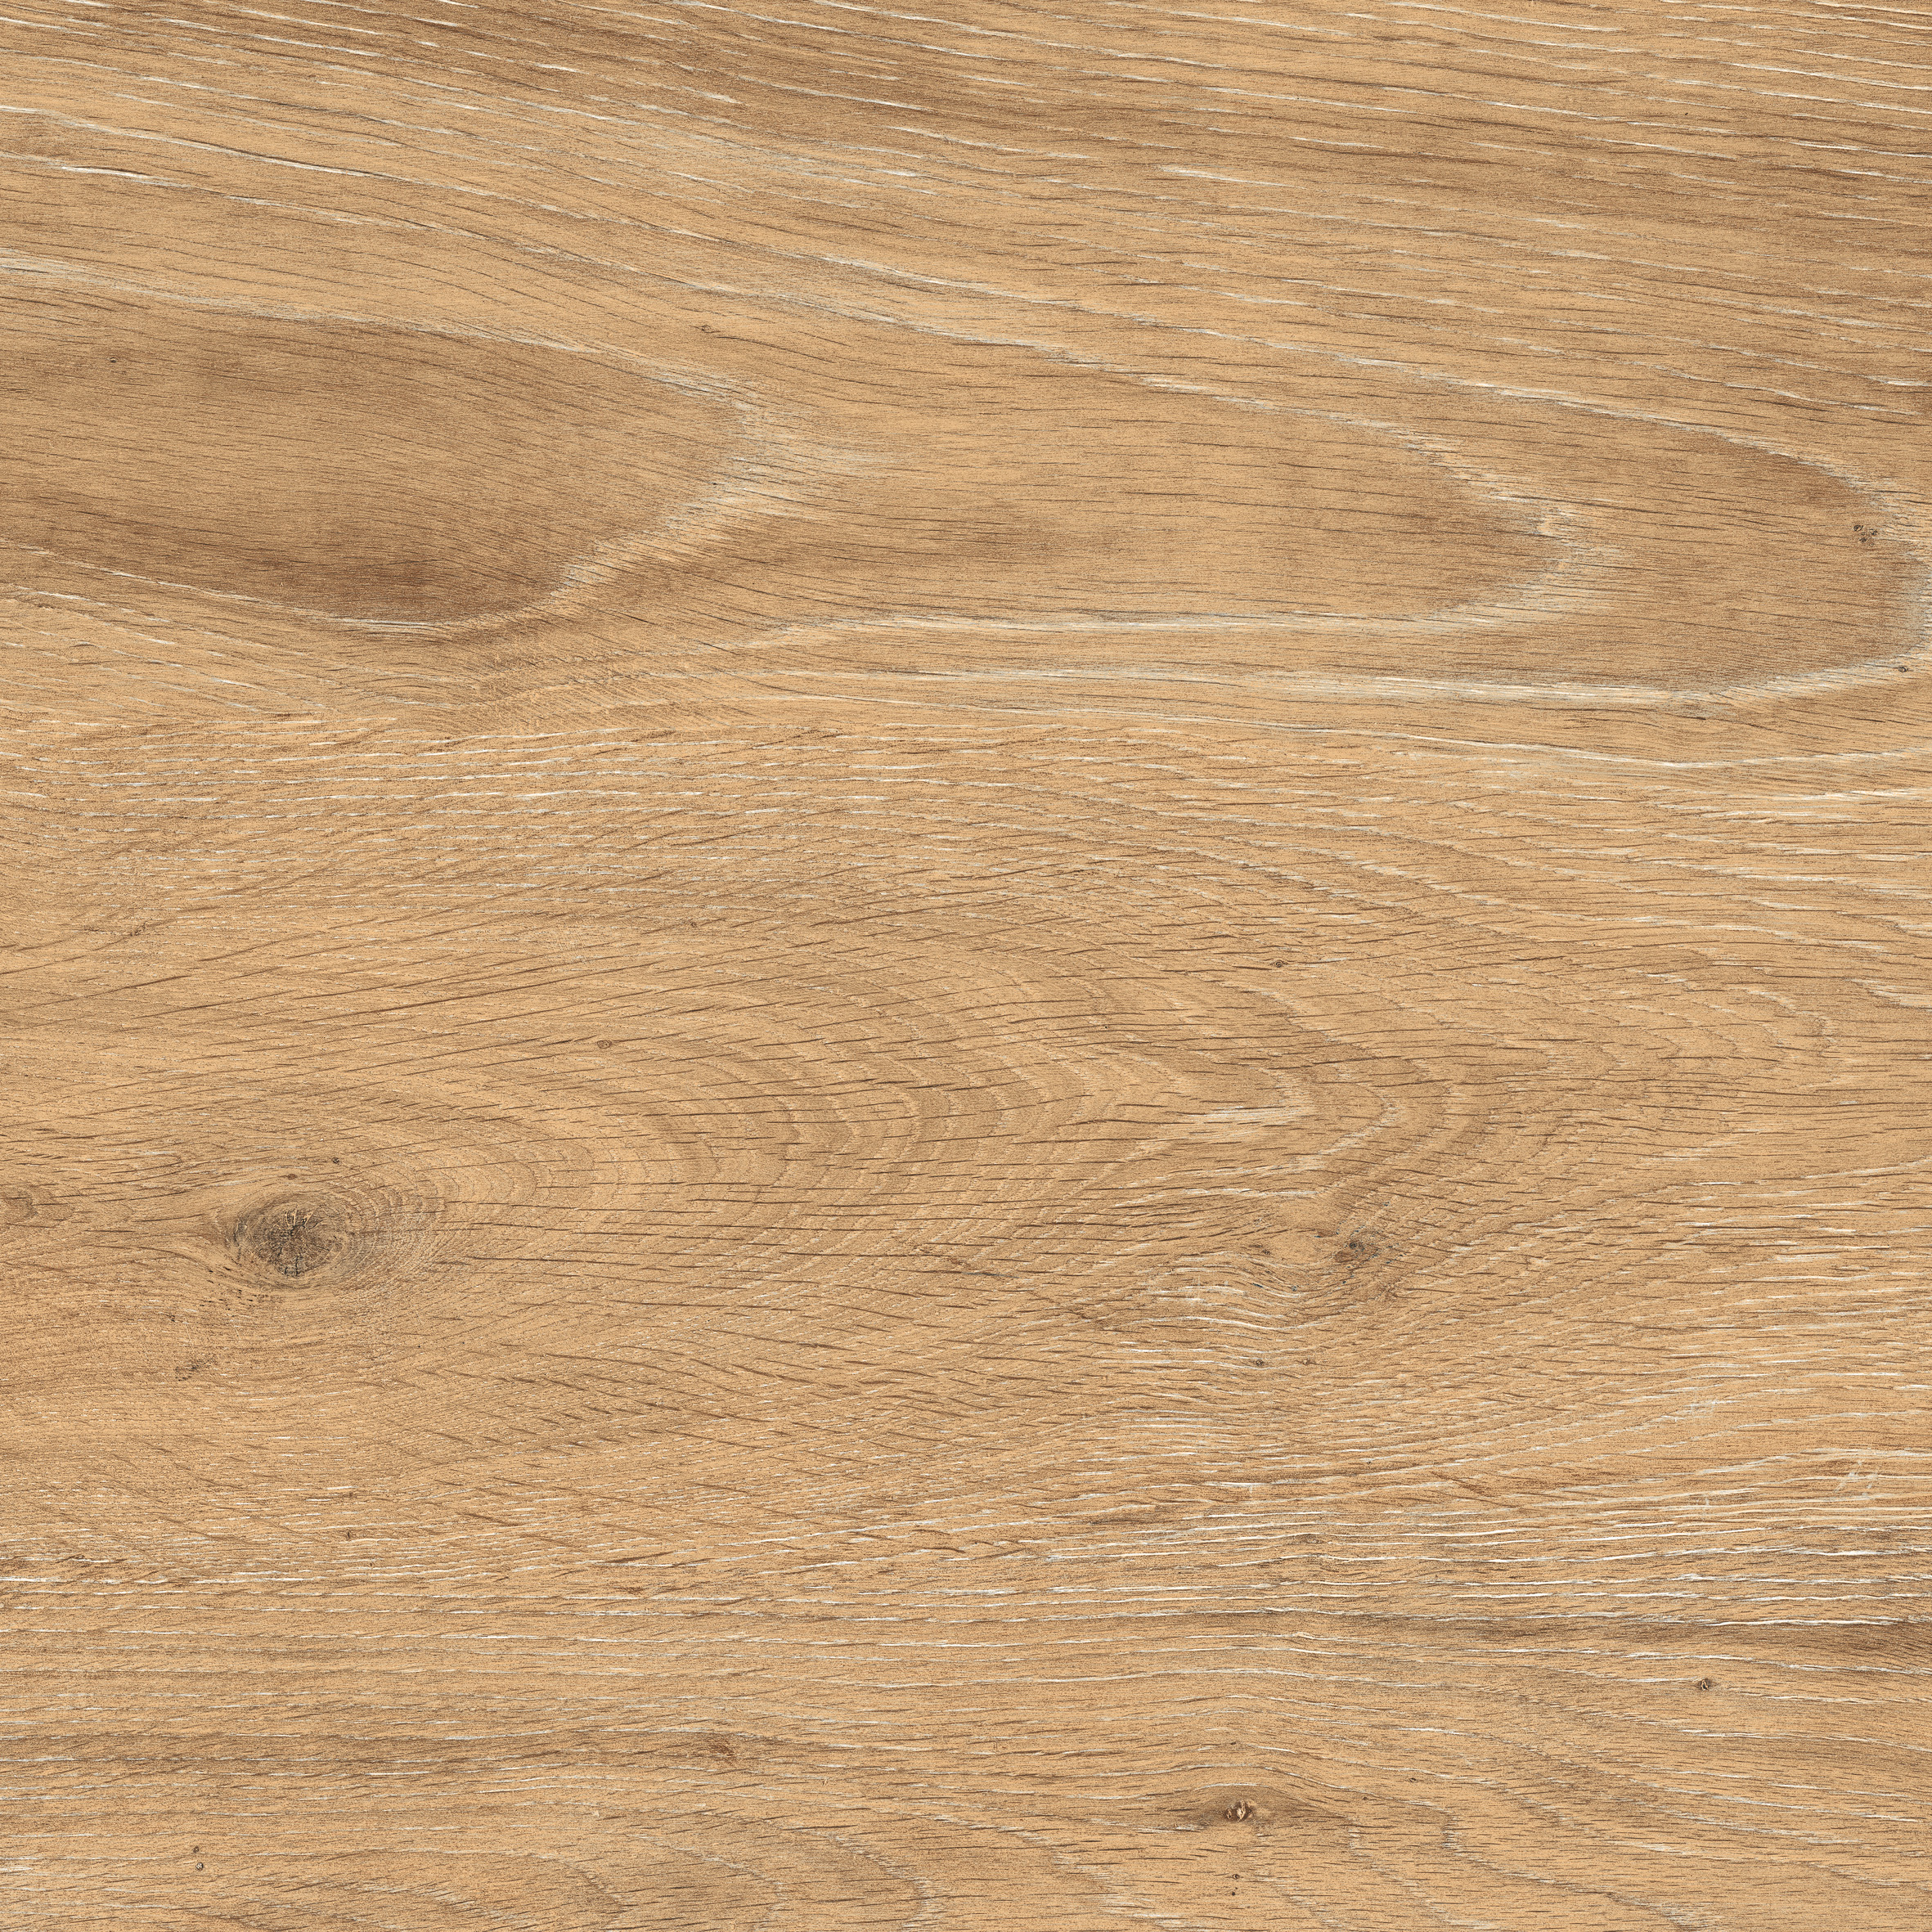 rrk-oak-wood-brown